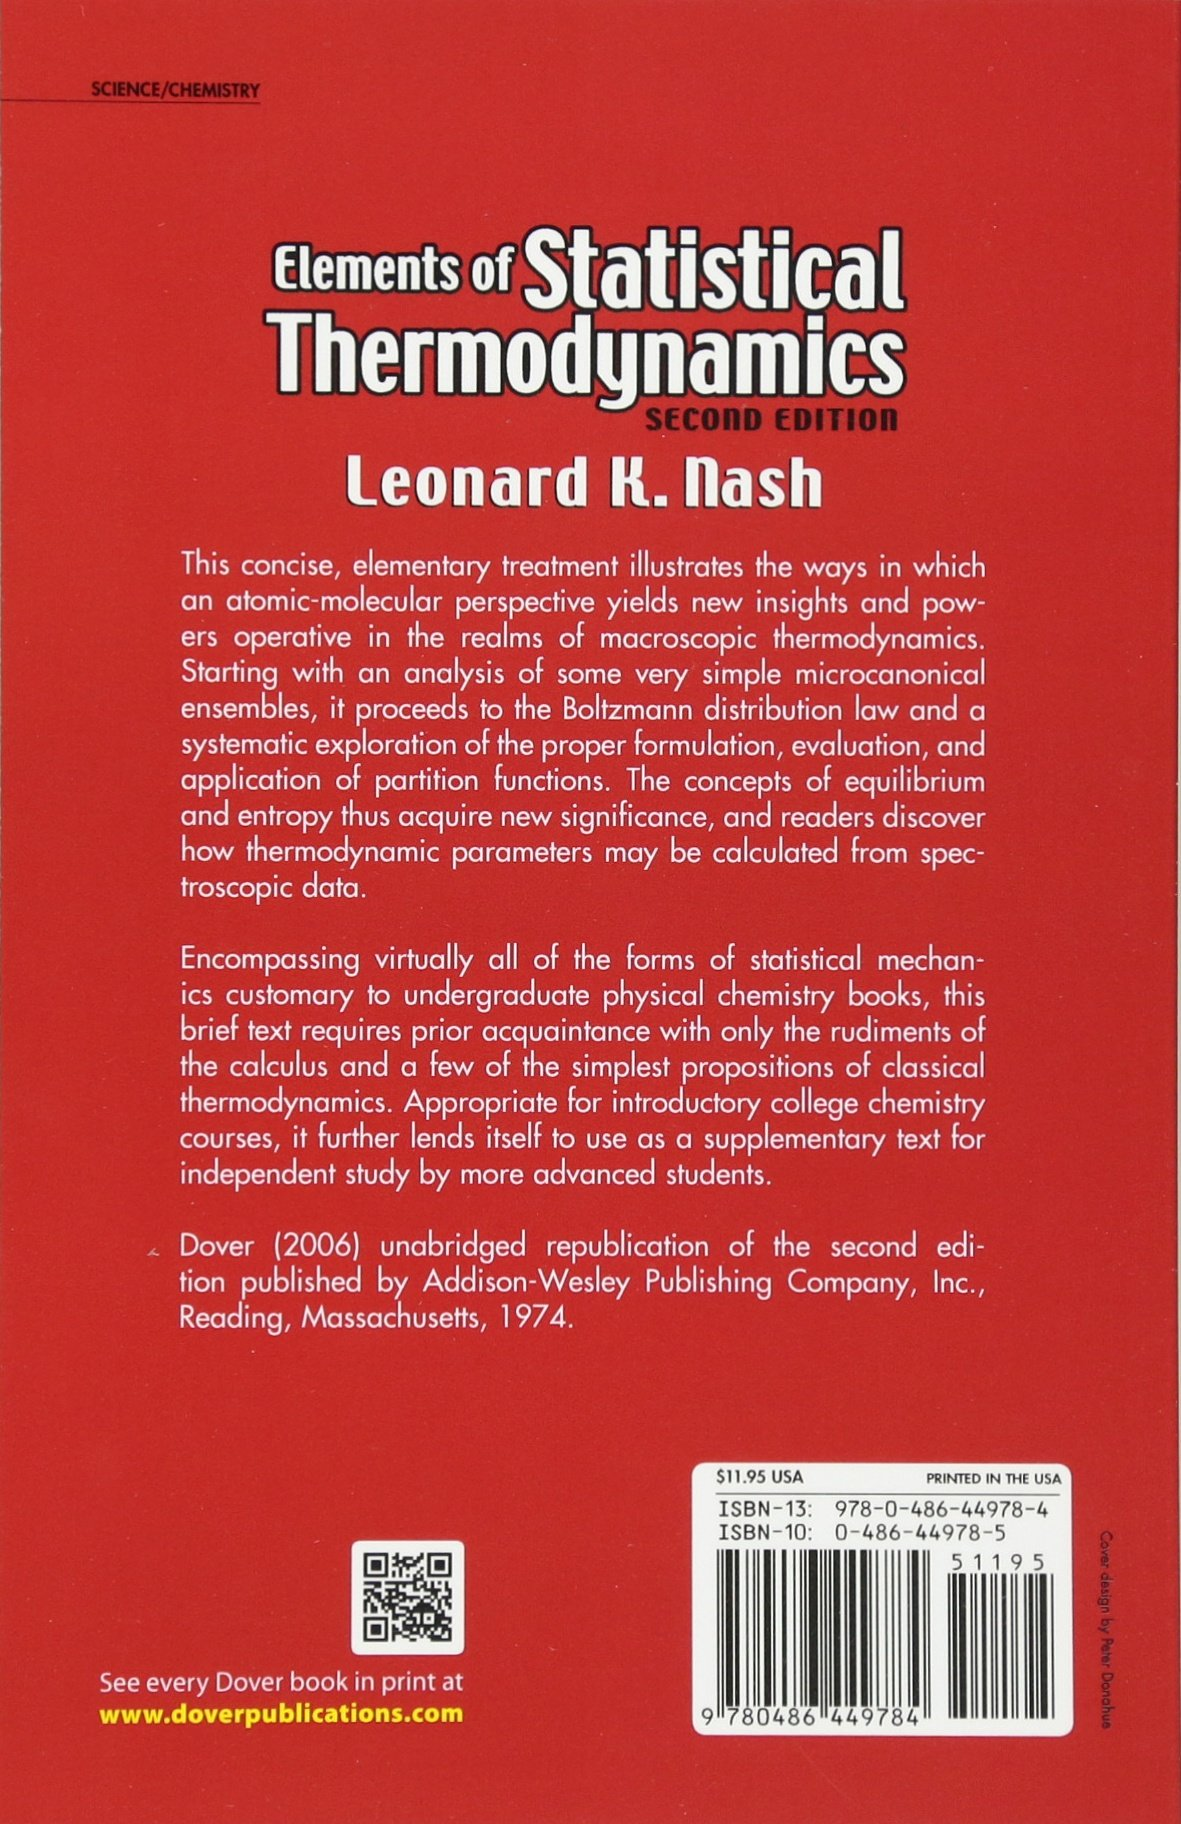 Elements of Statistical Thermodynamics: Second Edition (Dover Books on  Chemistry): Leonard K. Nash: 9780486449784: Amazon.com: Books